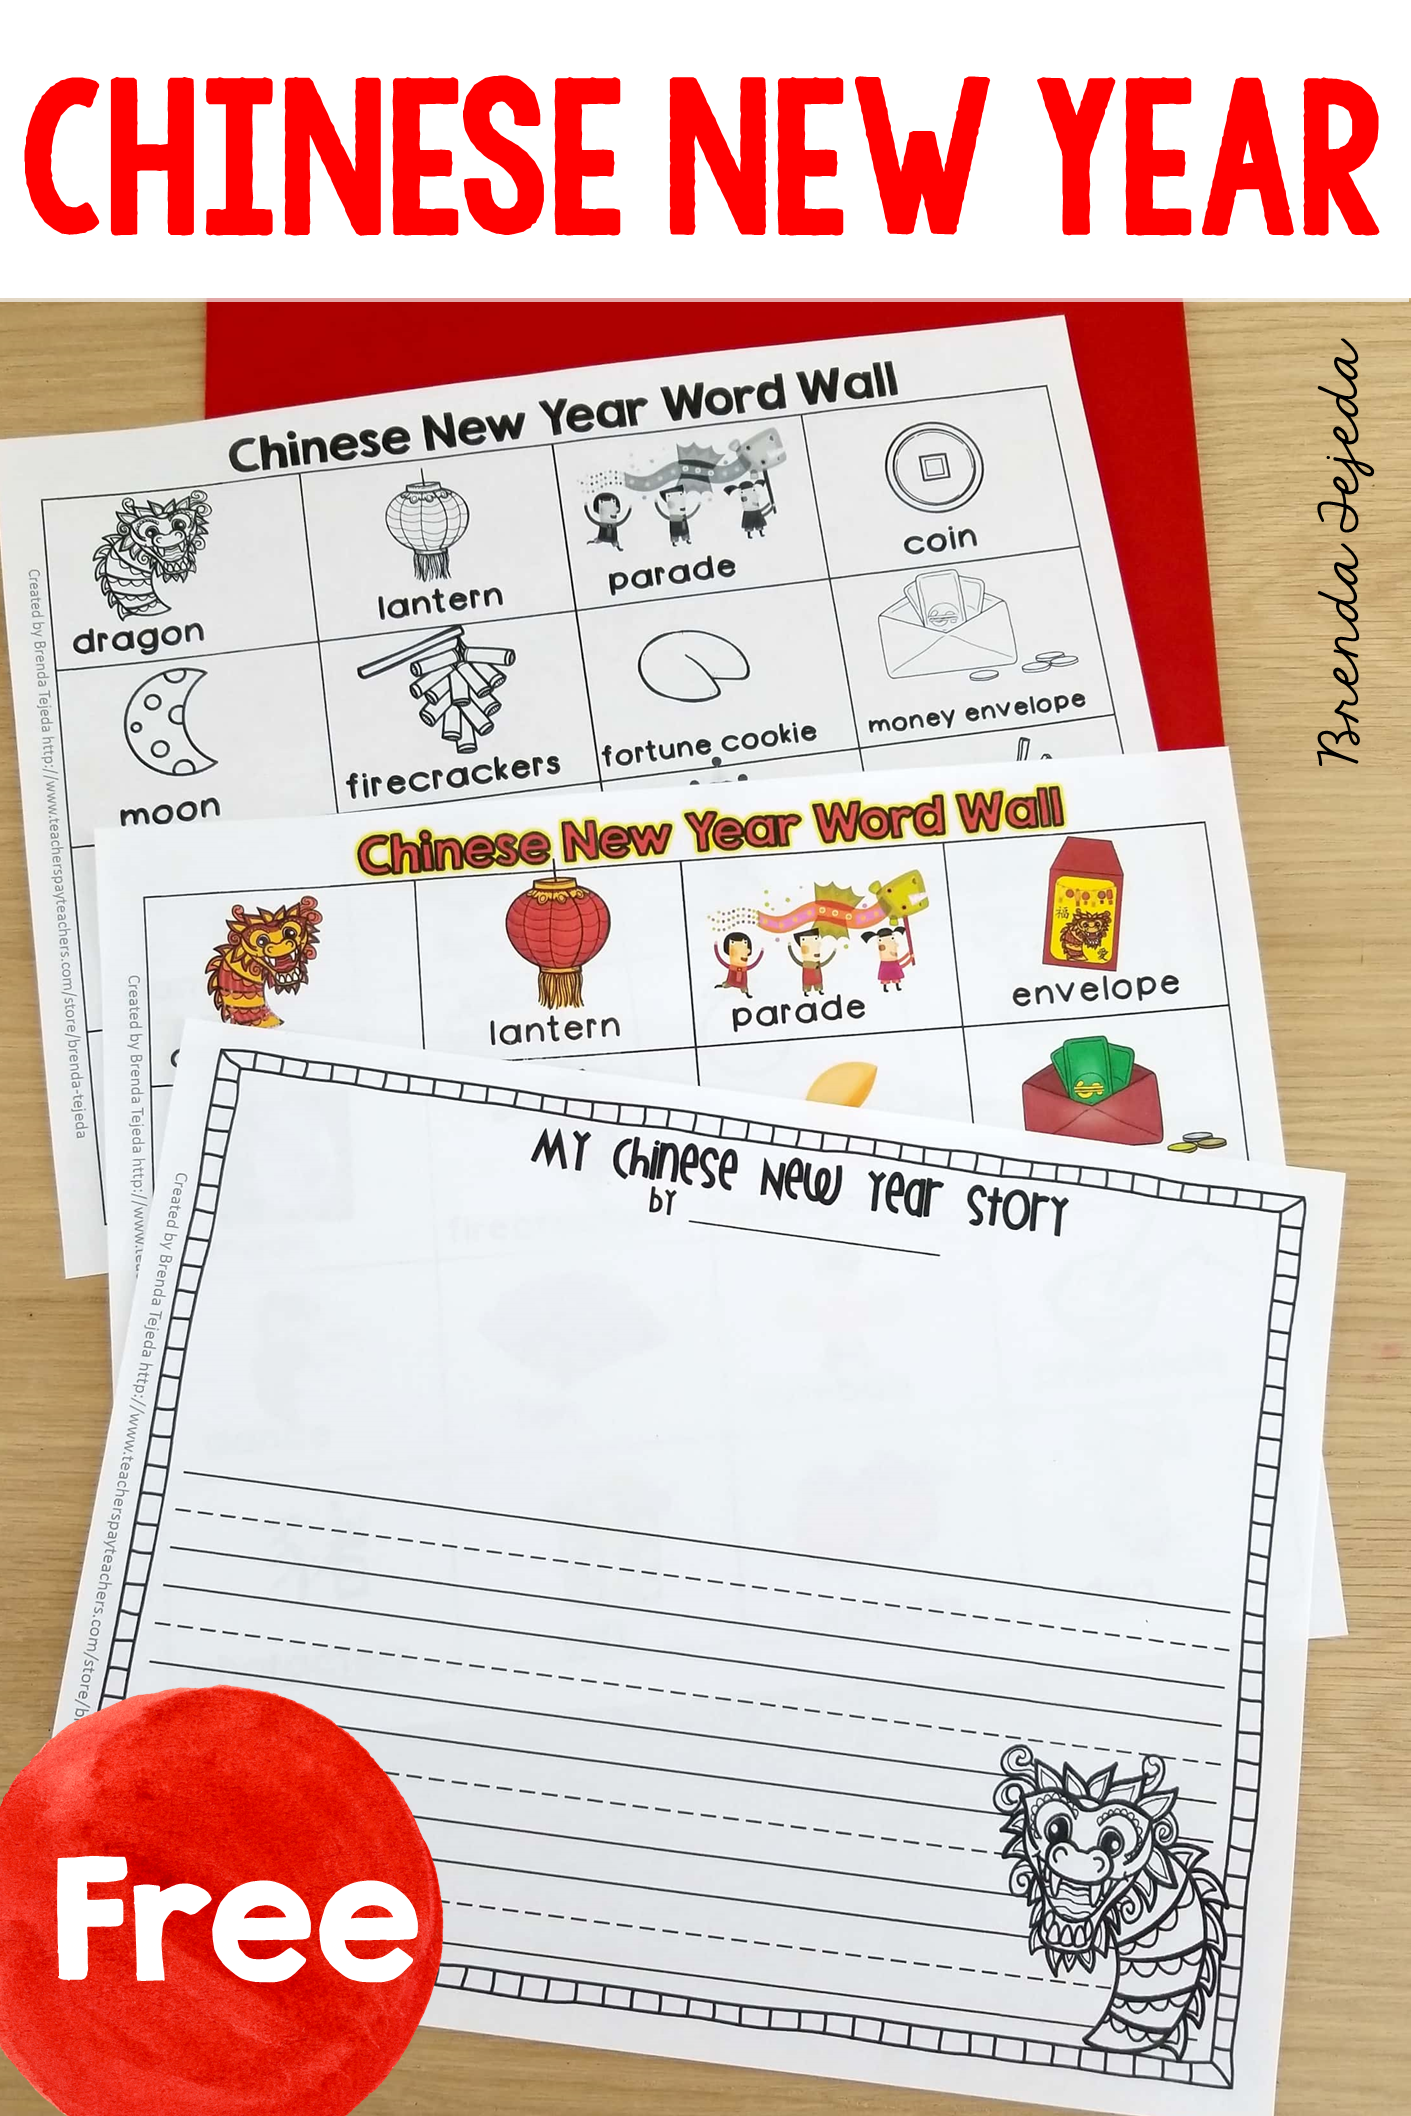 Free Chinese New Year Word Wall And Stationary Writing